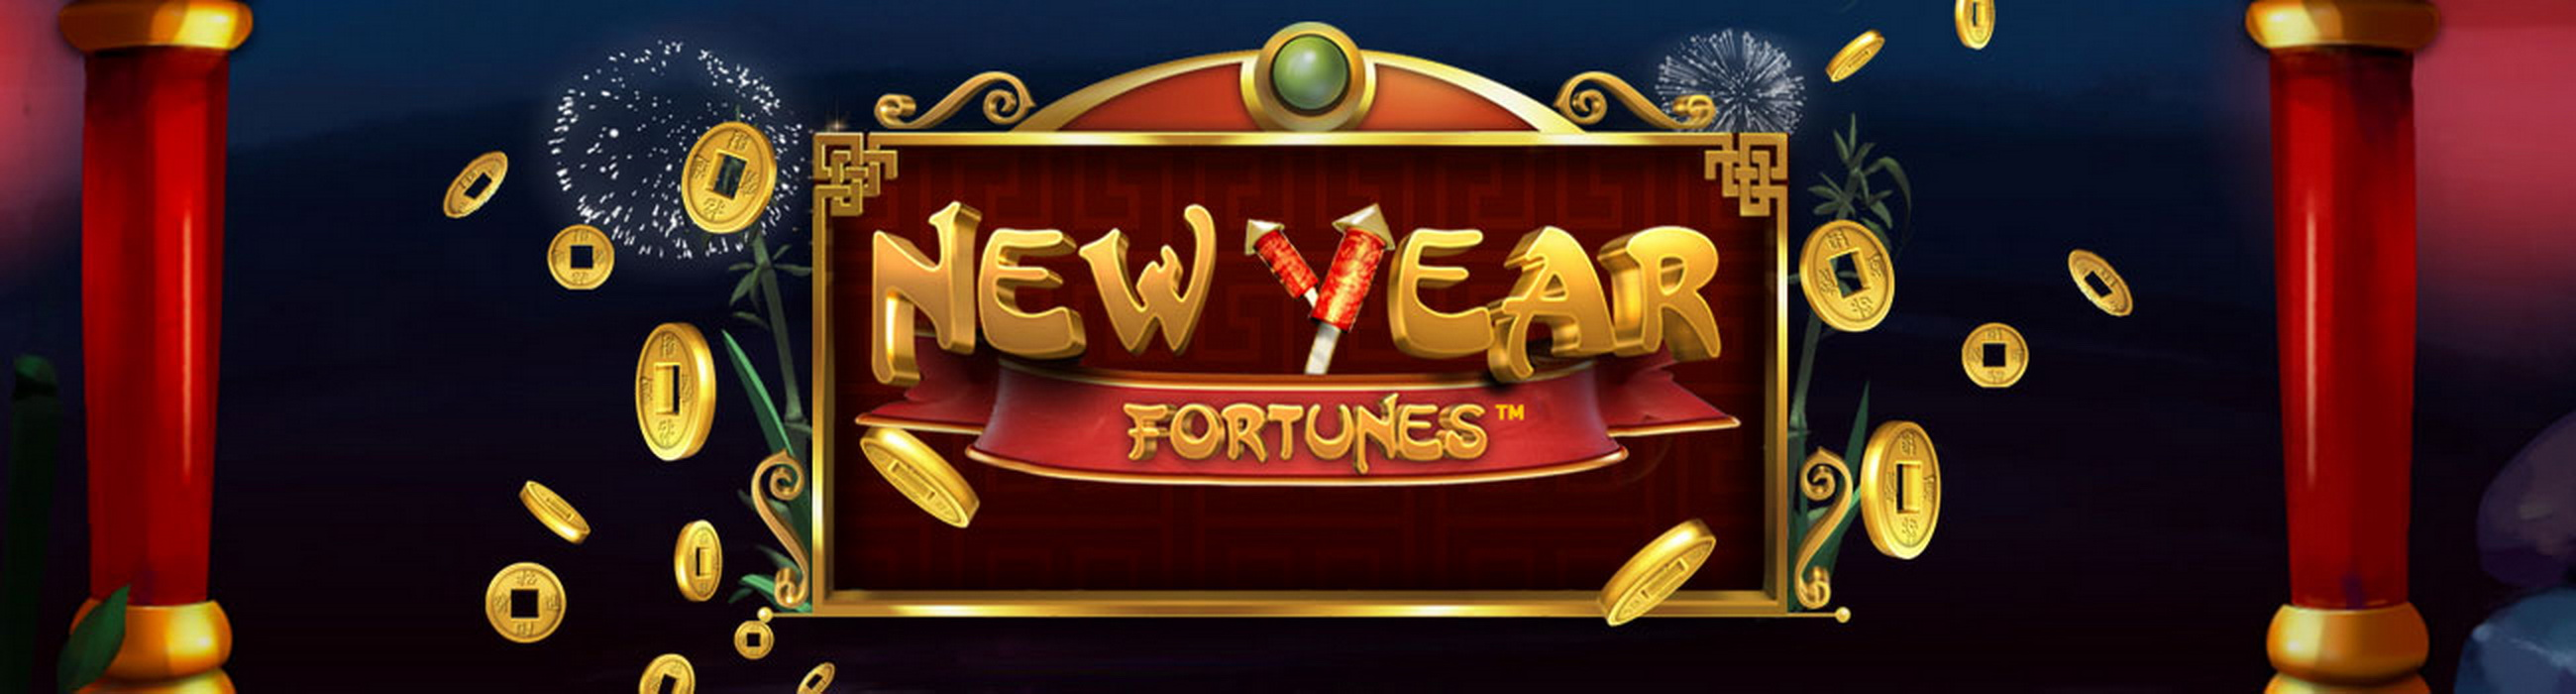 The New Year Fortunes Online Slot Demo Game by Mobilots